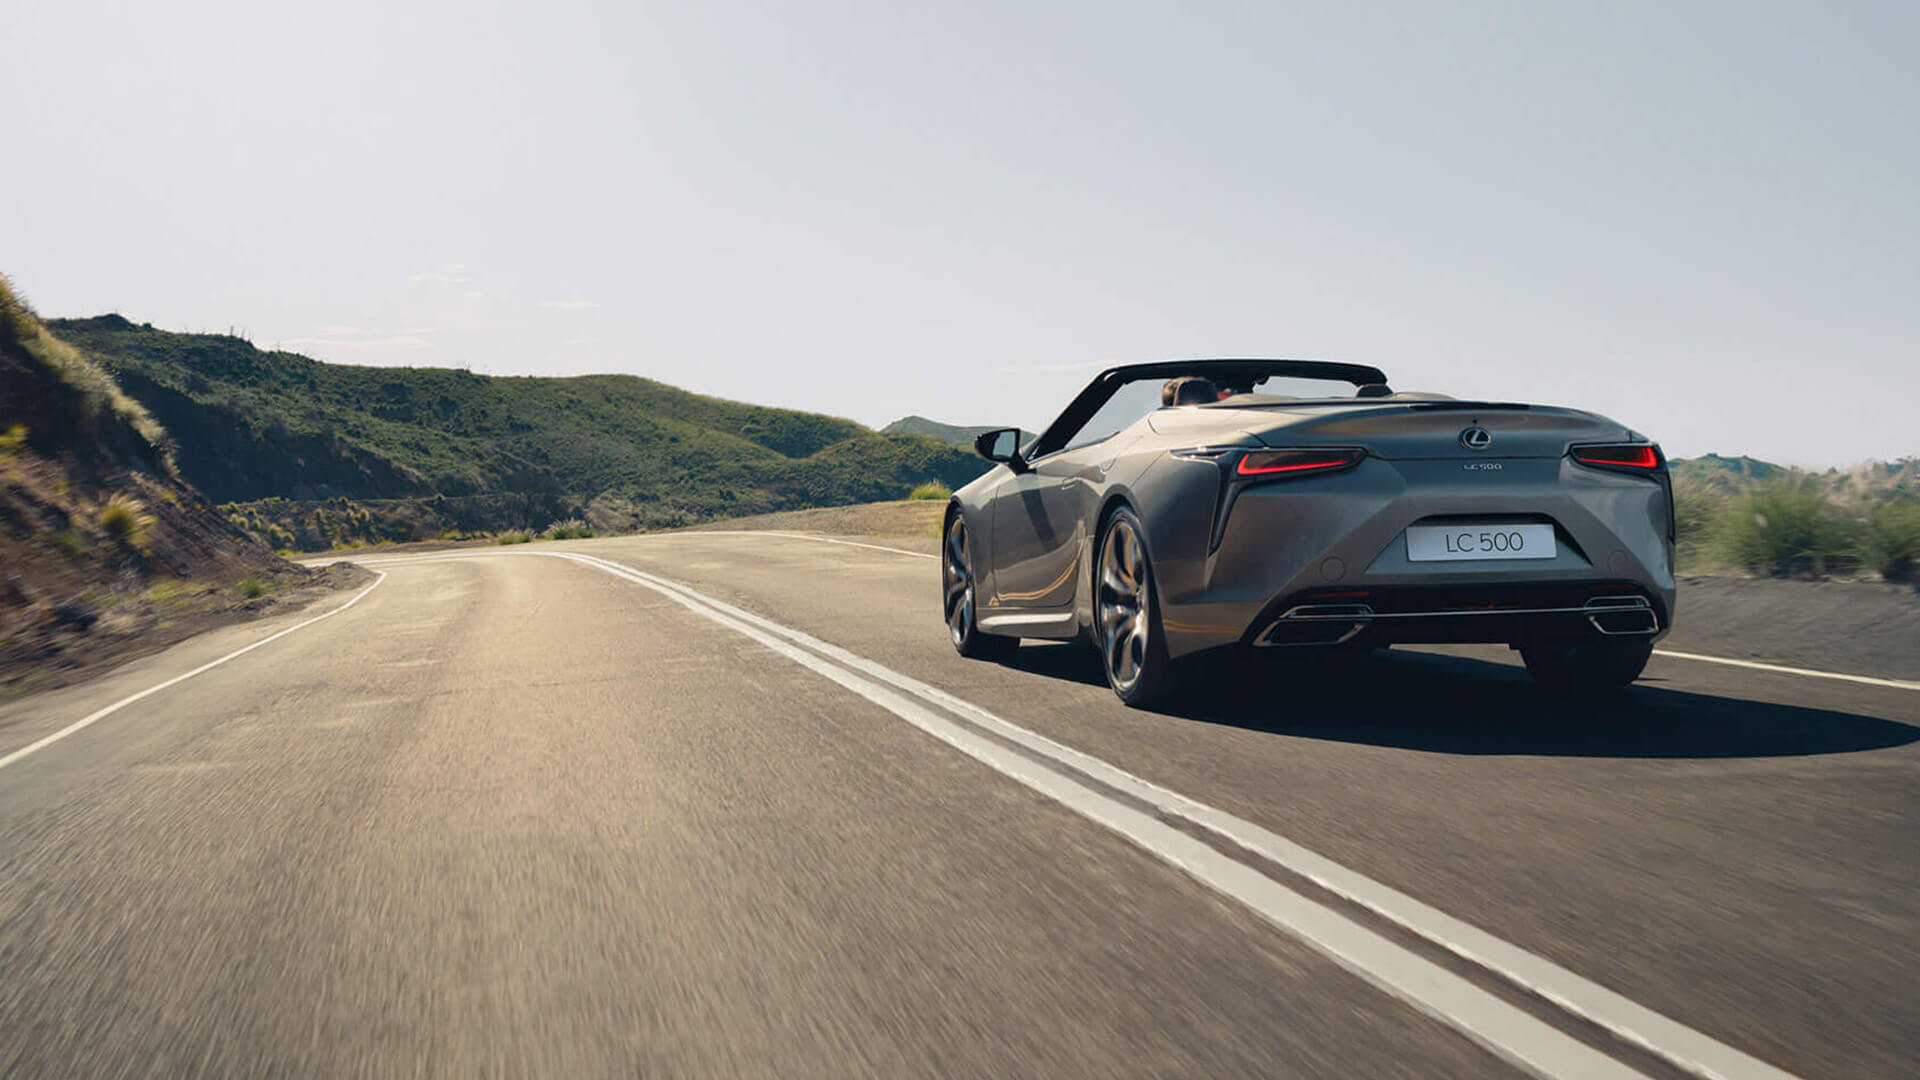 2020 LC convertible facts figures